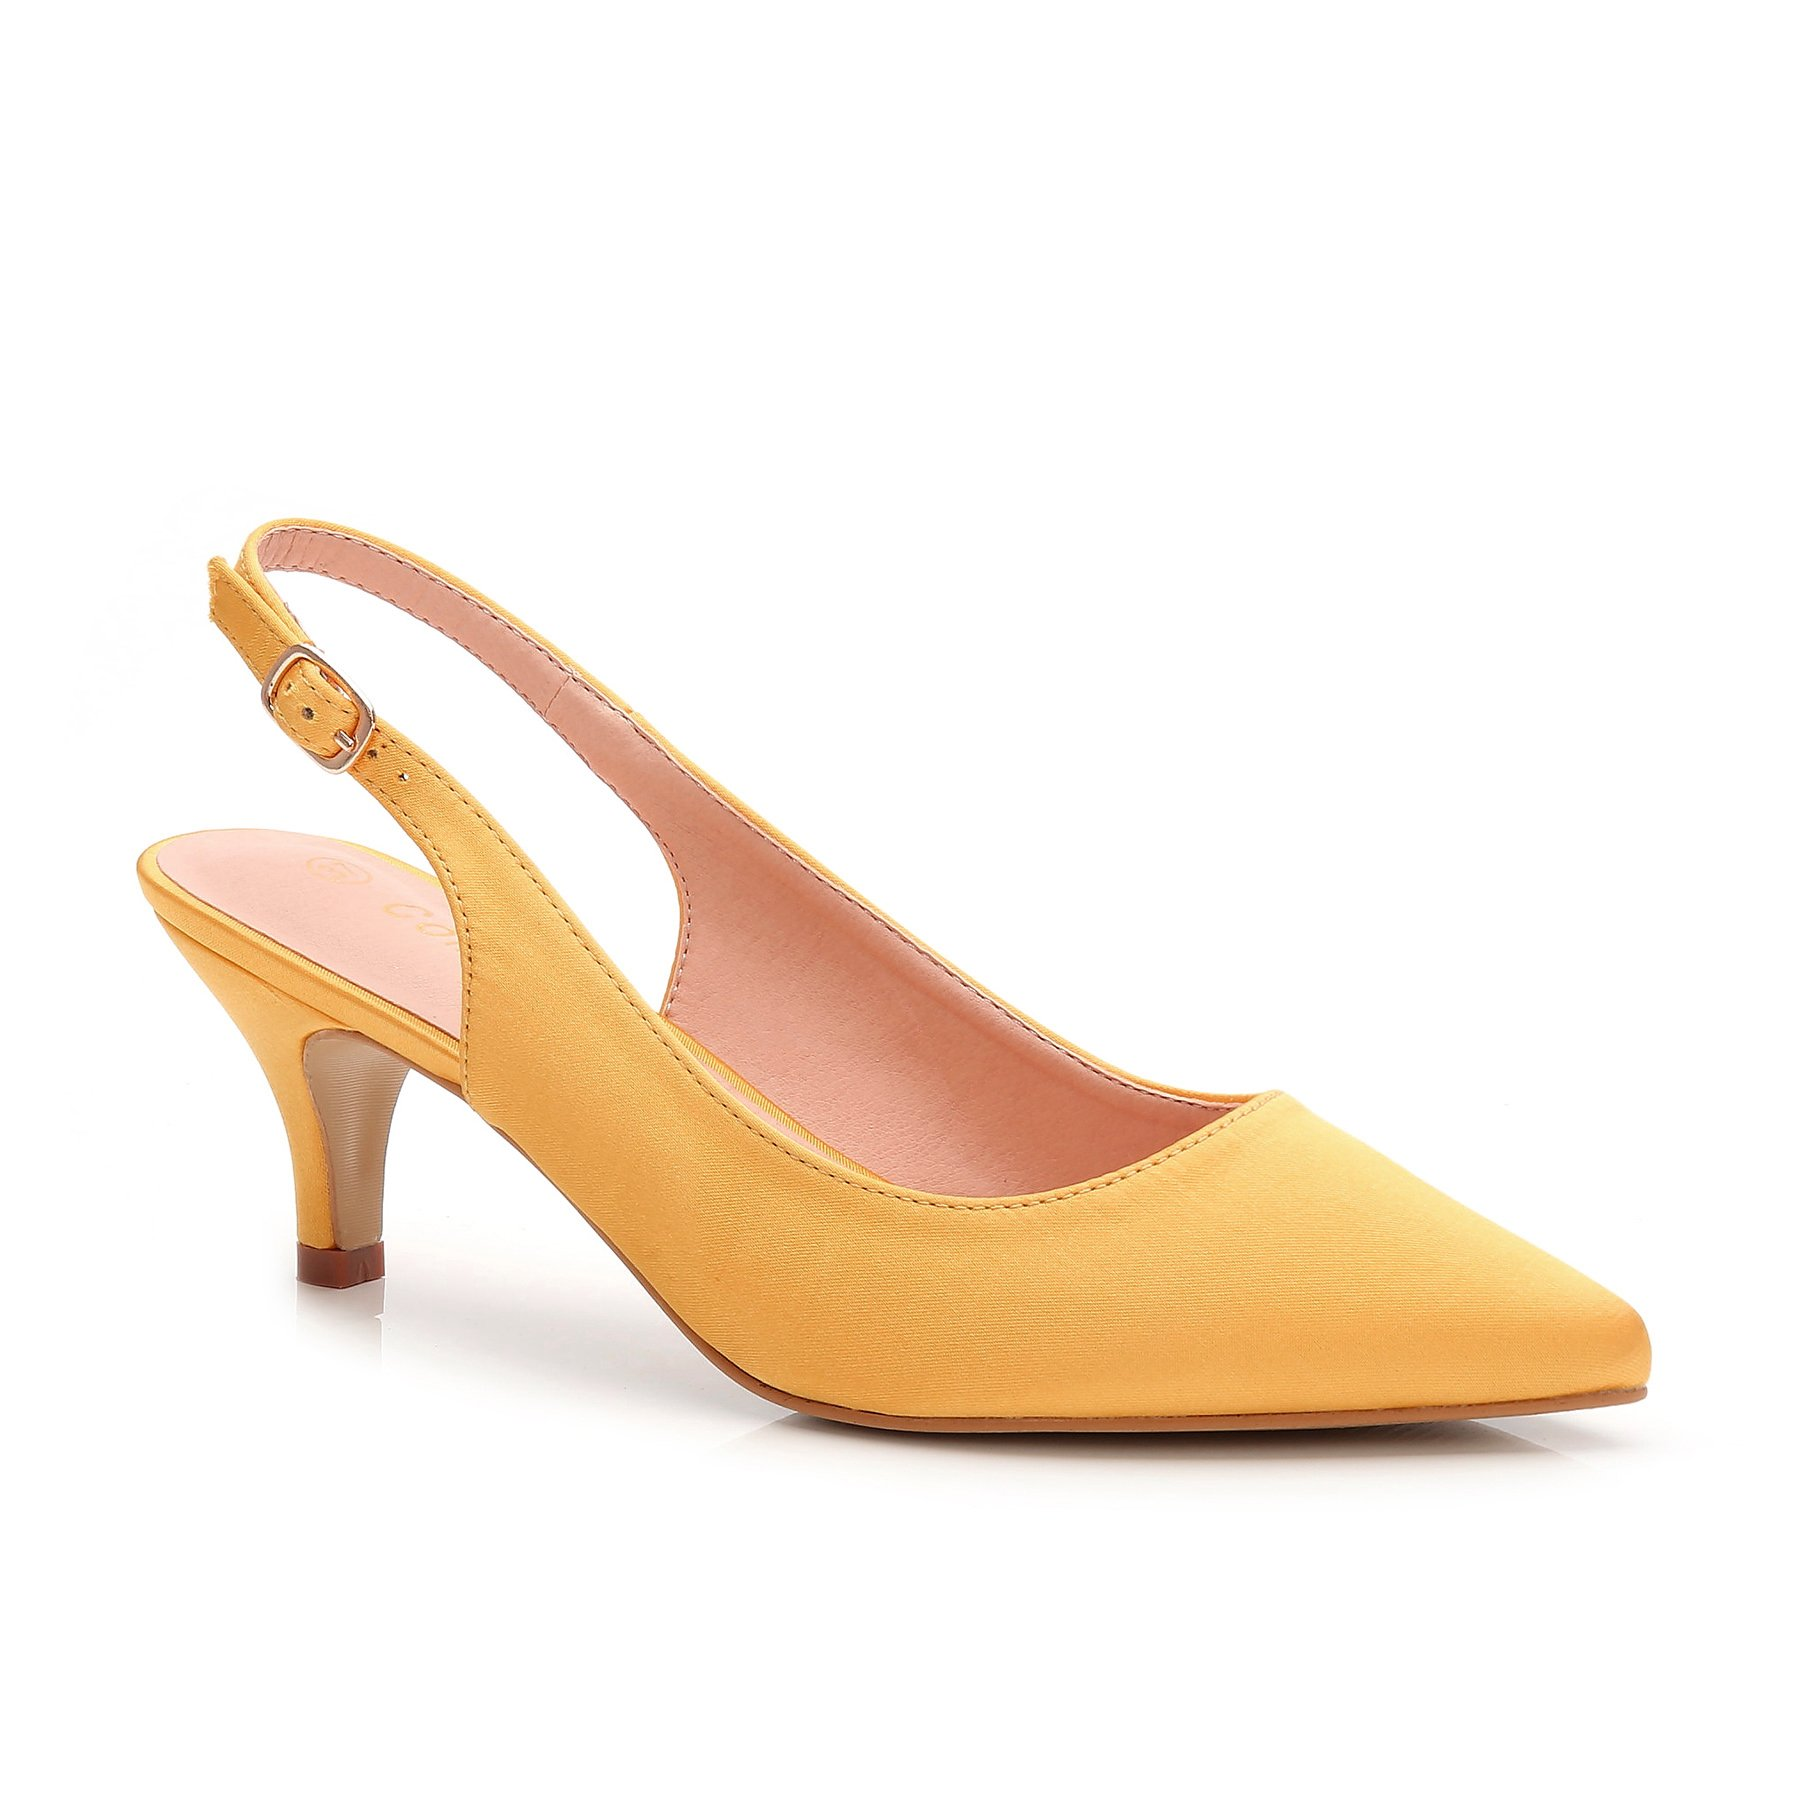 ComeShun Womens Shoes Slingback Kitten Heels Dress Pumps (39 EU/8 US, Yellow)